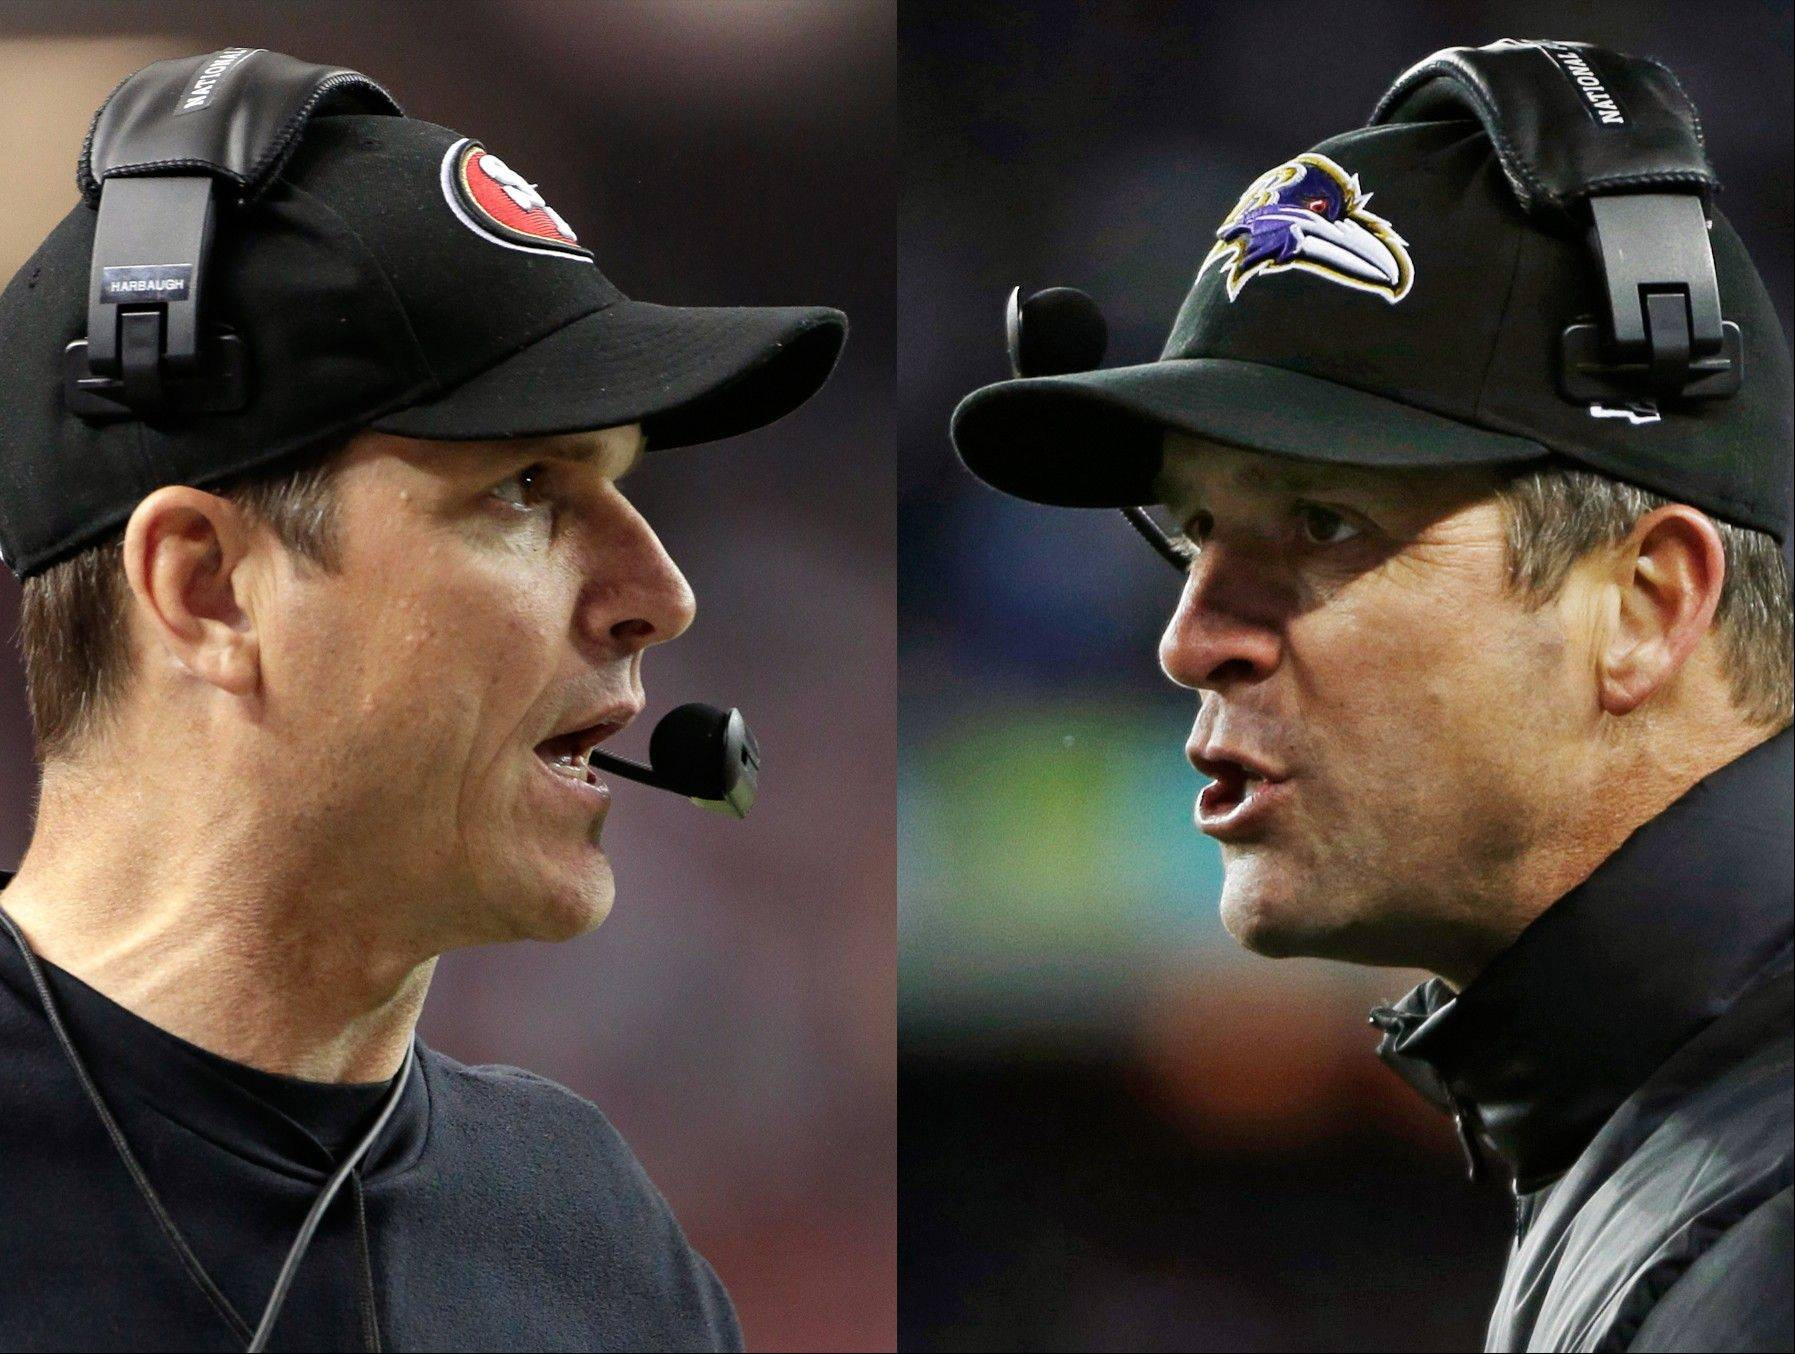 San Francisco 49ers head coach Jim Harbaugh, left, in Atlanta, and Baltimore Ravens head coach John Harbaugh in Foxborough, Mass., during their NFL football conference championship games. Get ready for the Brother Bowl � it�ll be Harbaugh vs. Harbaugh when Big Bro John�s Baltimore Ravens (13-6) play Little Bro Jim�s San Francisco 49ers (13-4-1) in the Super Bowl at New Orleans in two weeks.